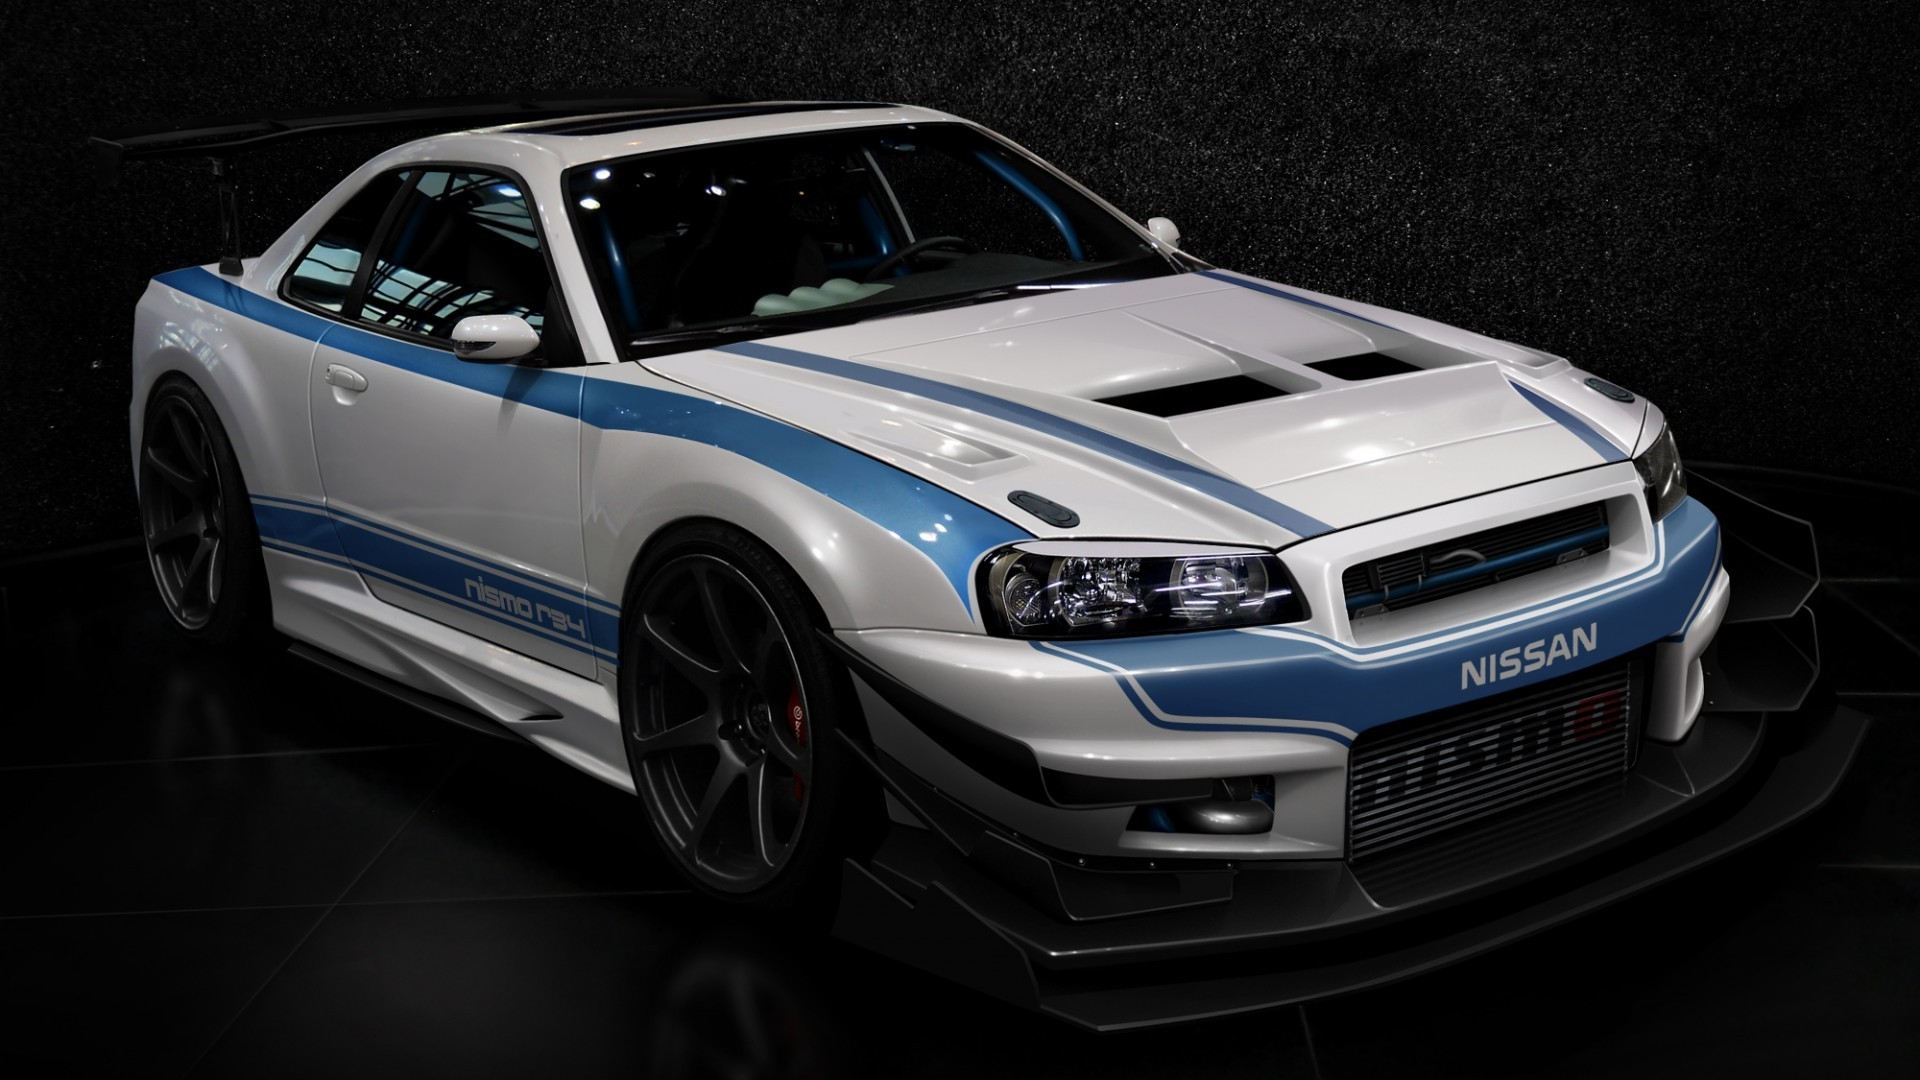 cars design tuning tuned nissan skyline r34 gt r wallpaper 15313 pc en. Black Bedroom Furniture Sets. Home Design Ideas